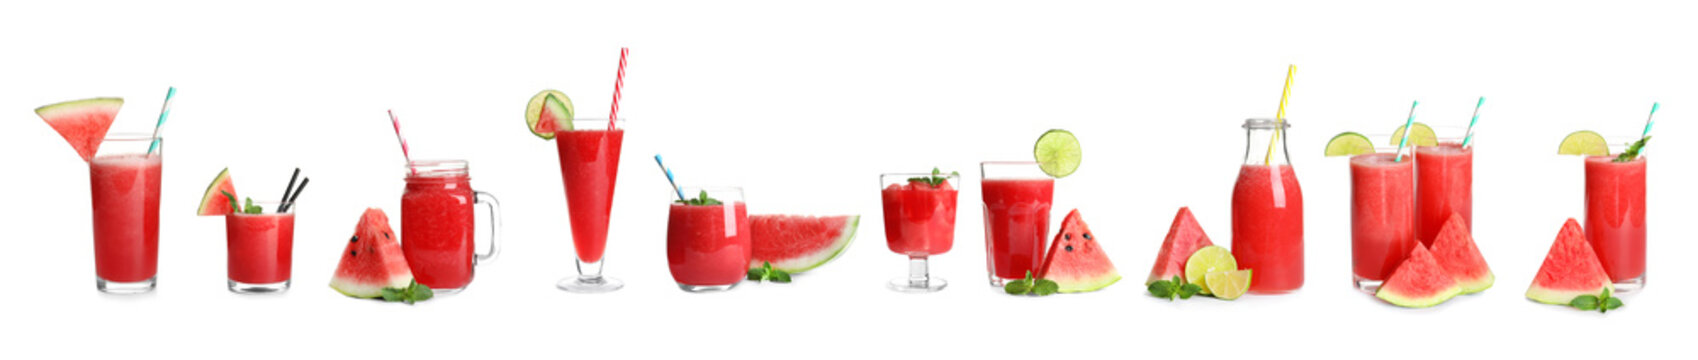 Set of yummy watermelon cocktails in different glassware on white background